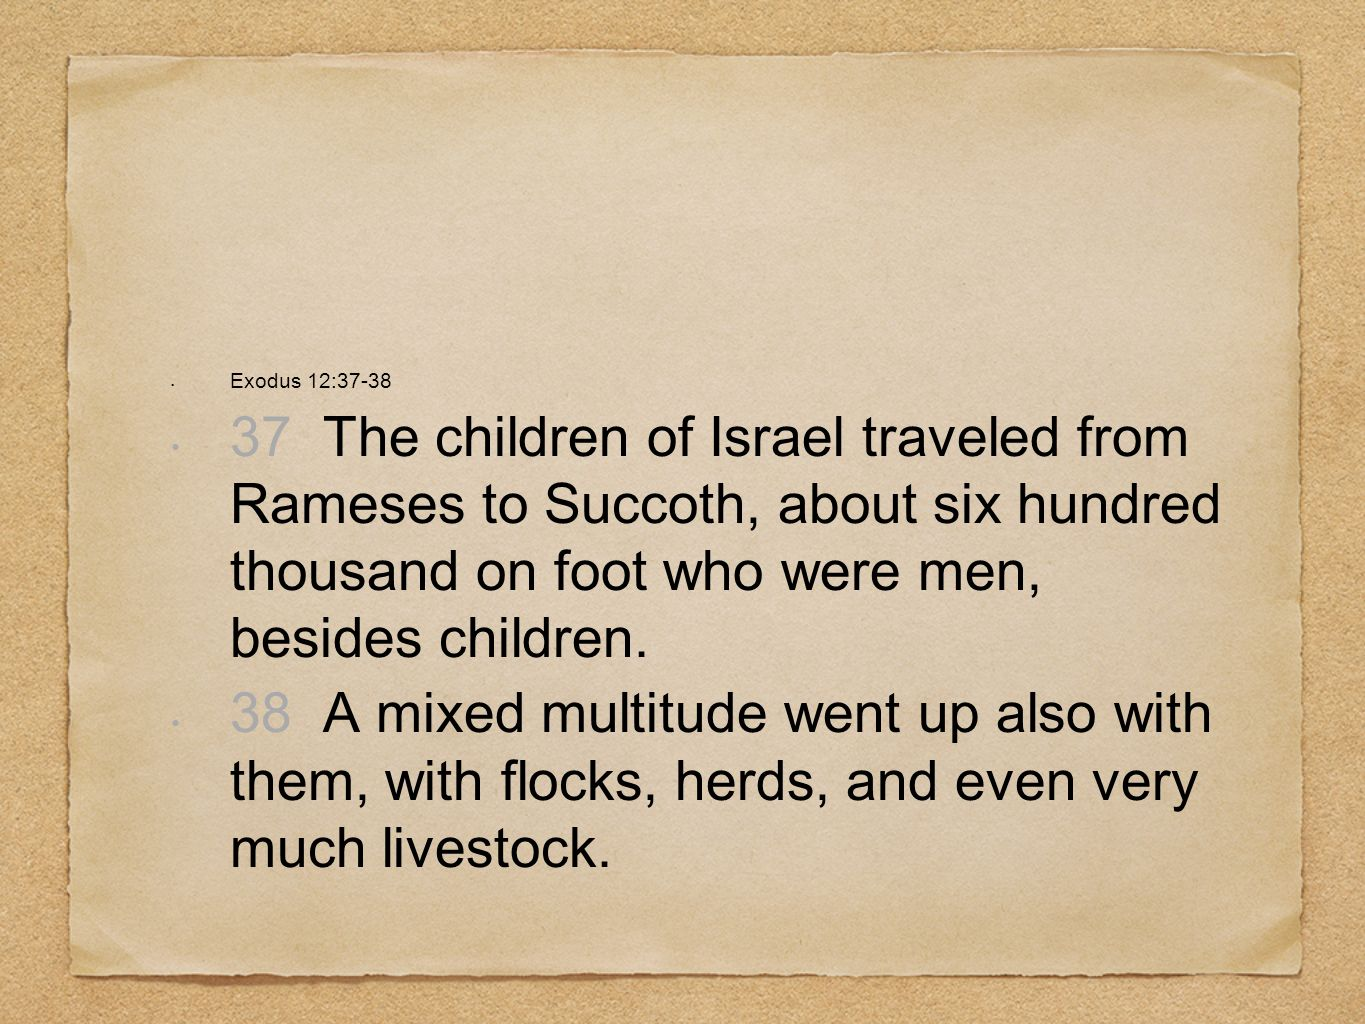 Exodus 12:37-3837 The children of Israel traveled from Rameses to Succoth, about six hundred thousand on foot who were men, besides children.